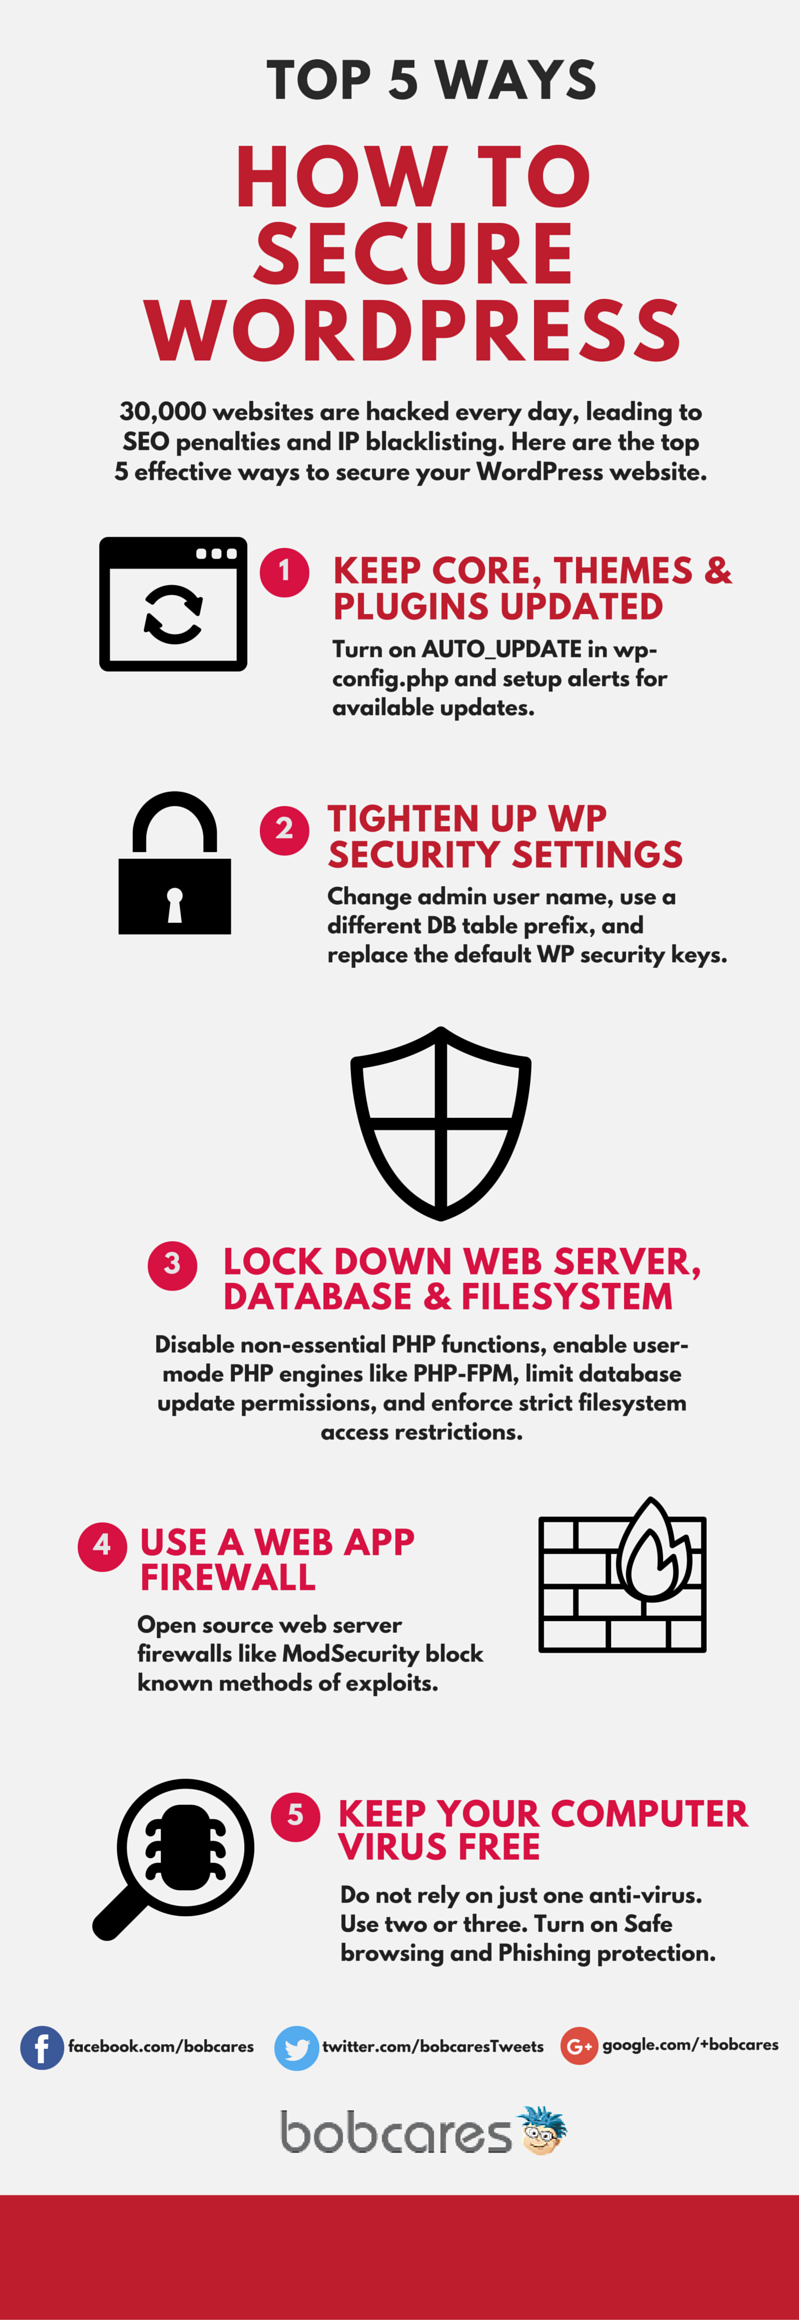 Checklist to ensure secure WordPress hosting for customer